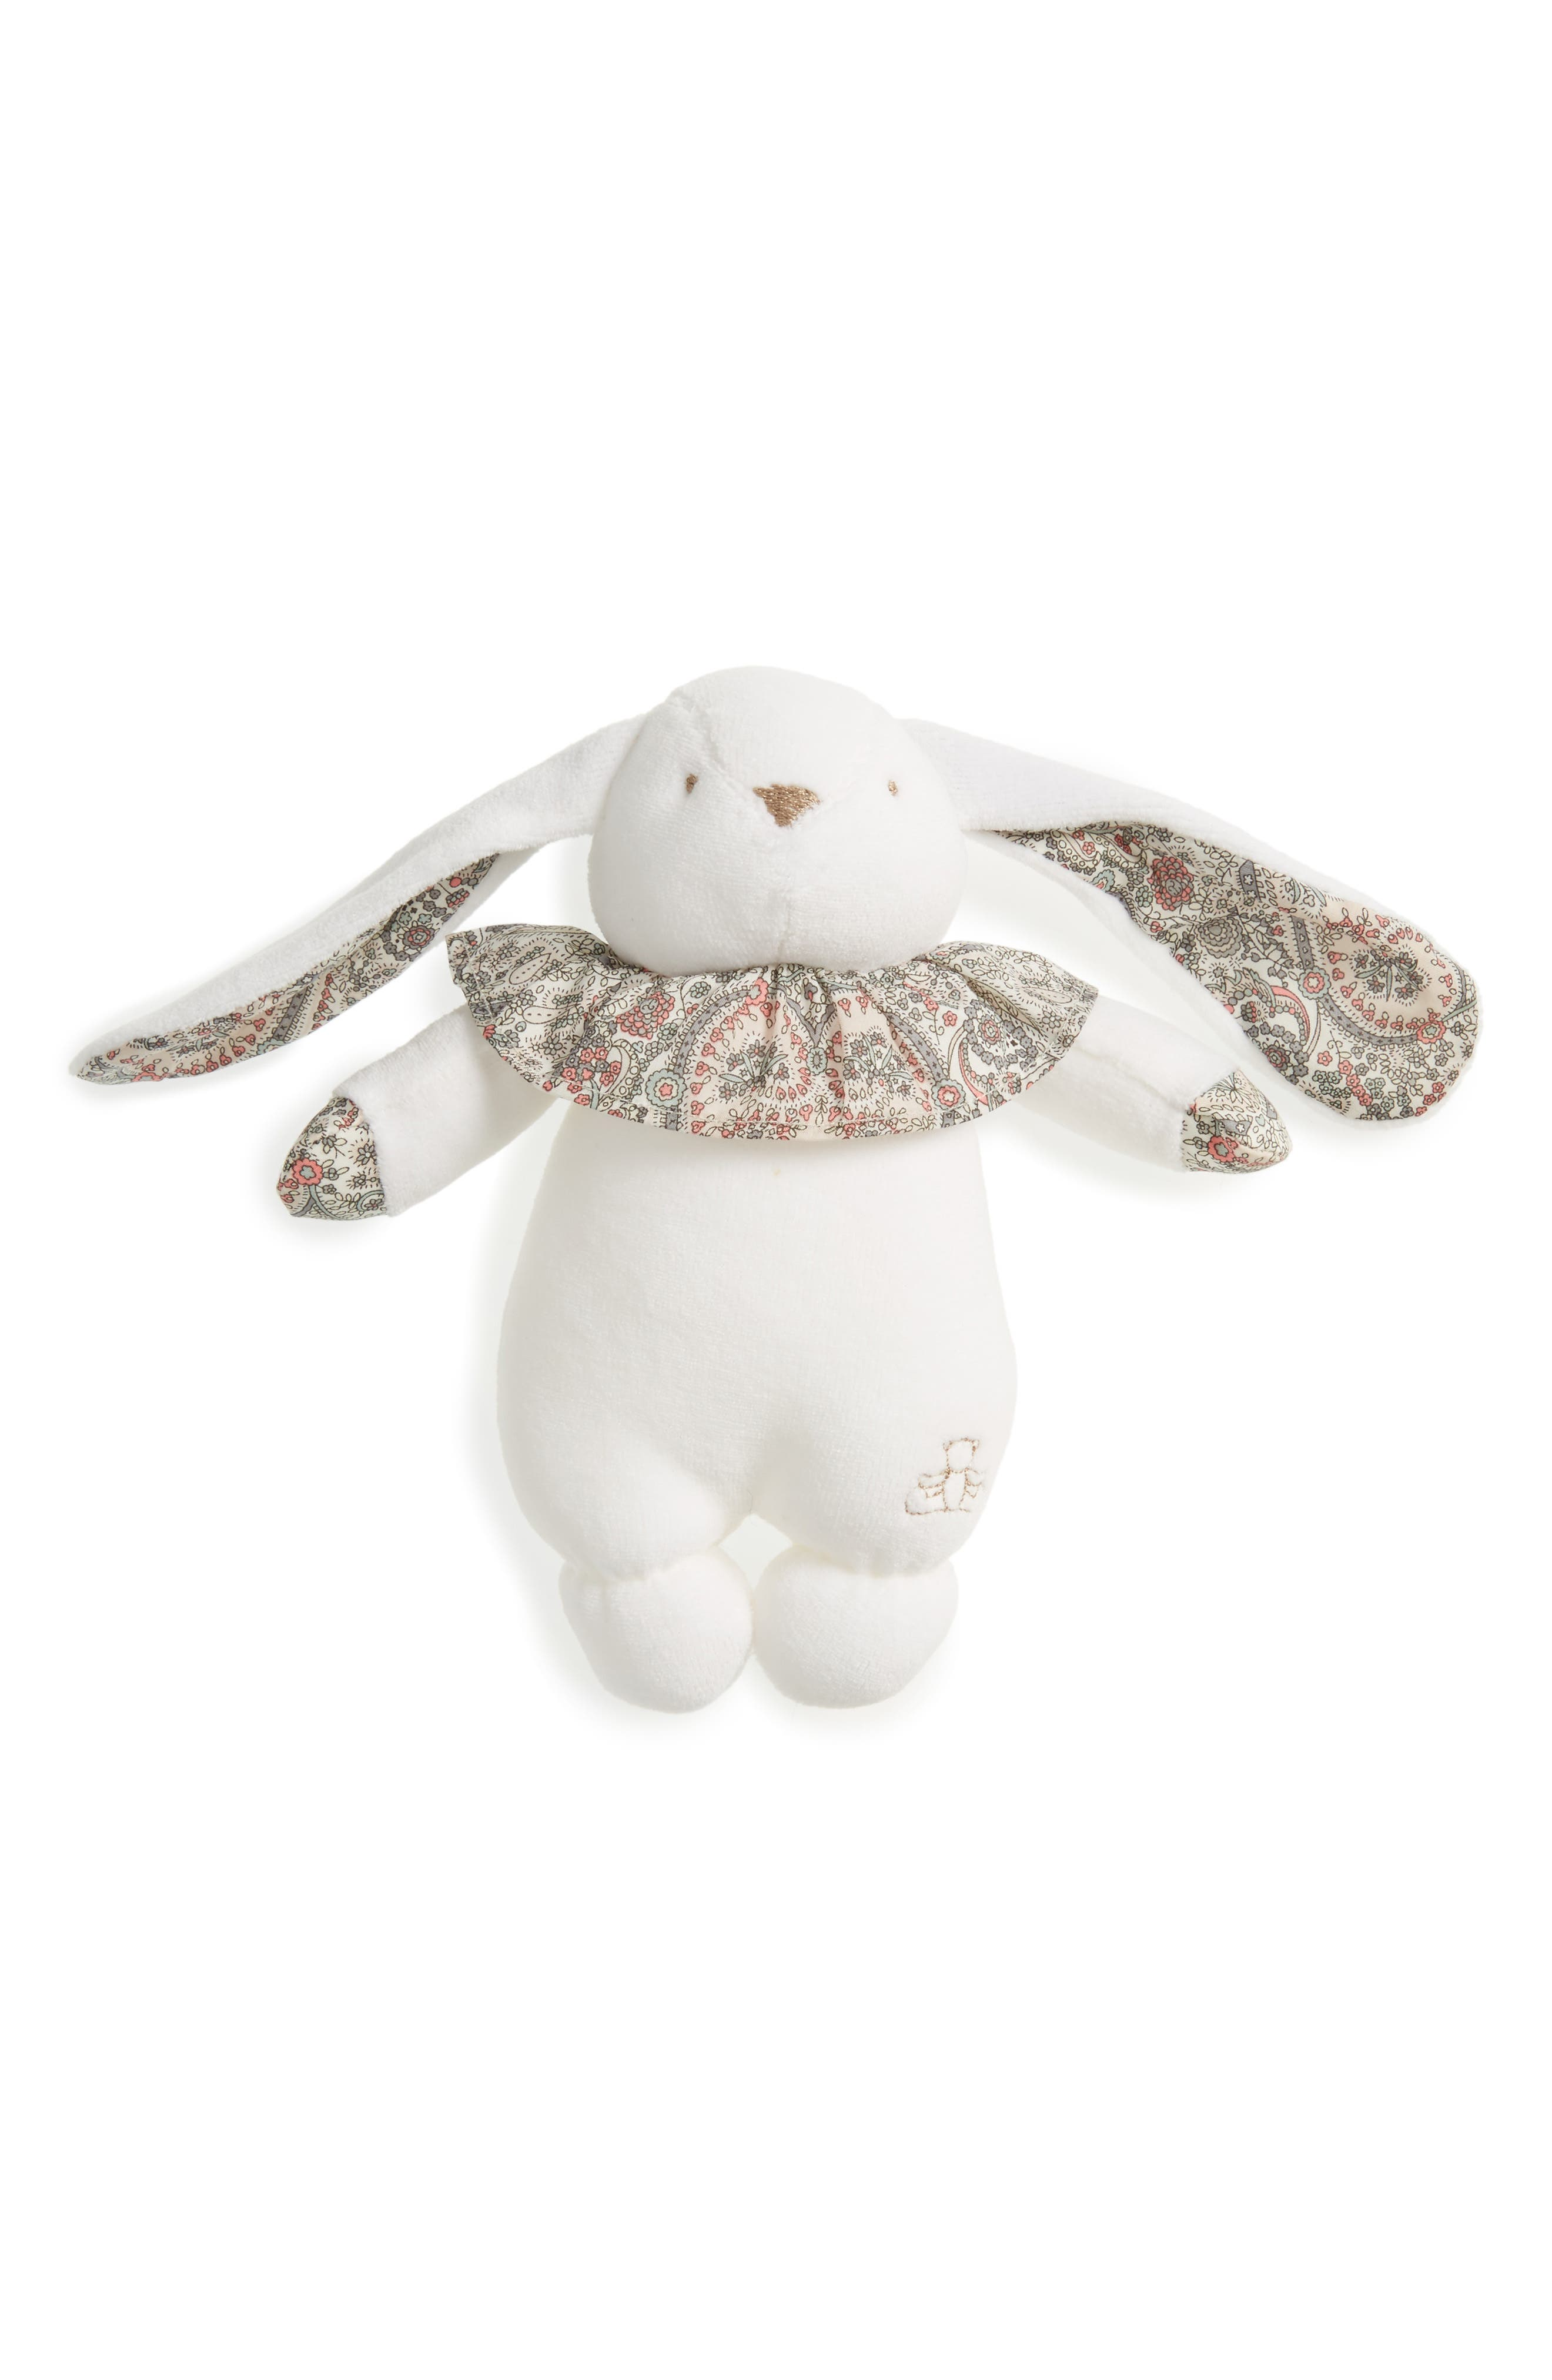 Pamplemousse Peluches x Liberty of London Rabbit Rattle